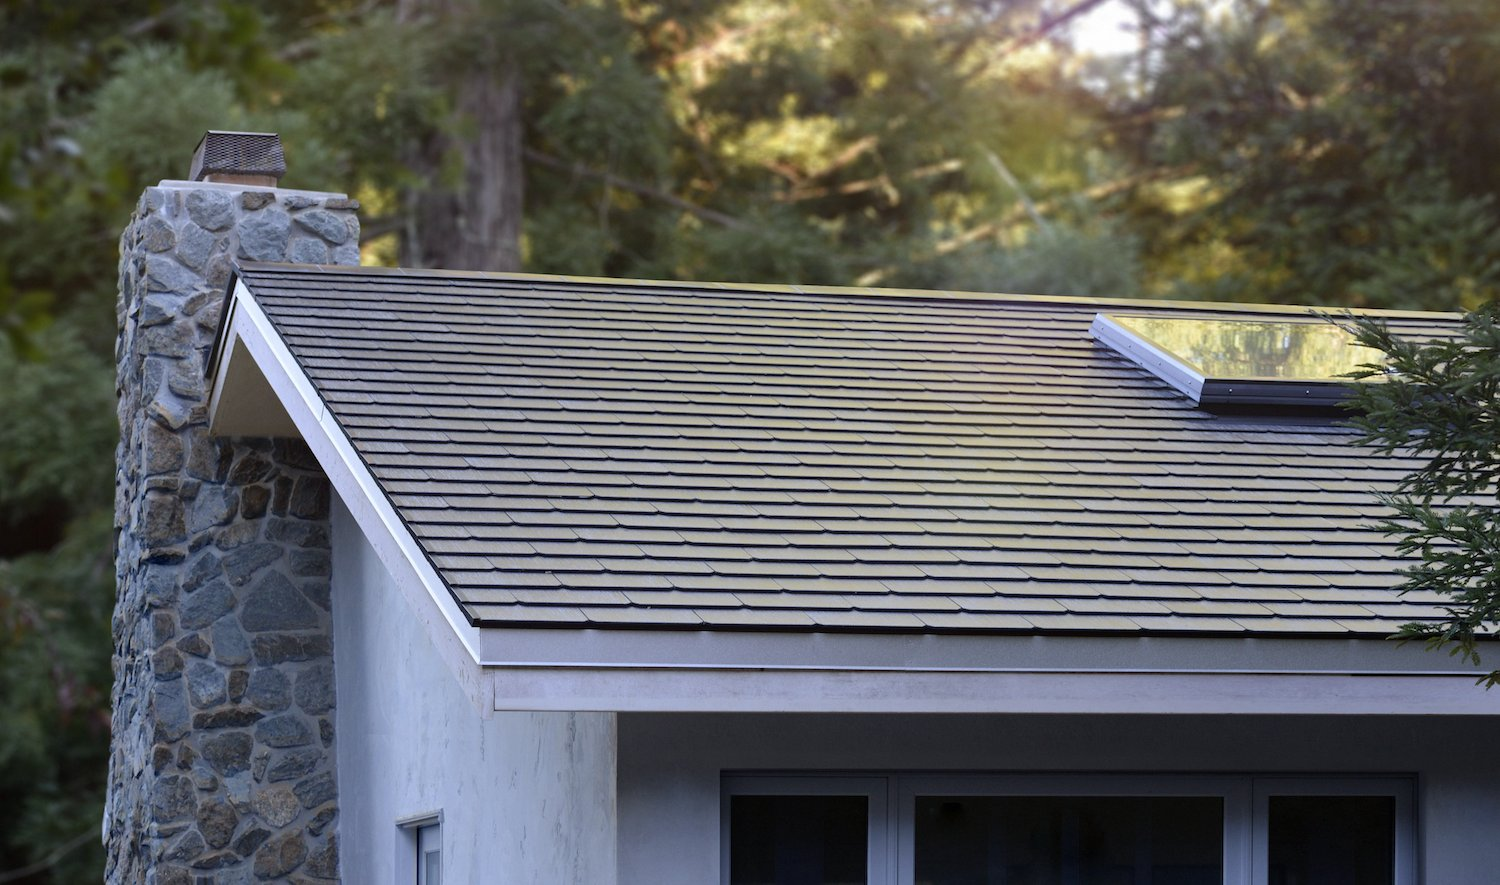 tesla completes first solar roof installations on employee homes pilot production remains at. Black Bedroom Furniture Sets. Home Design Ideas